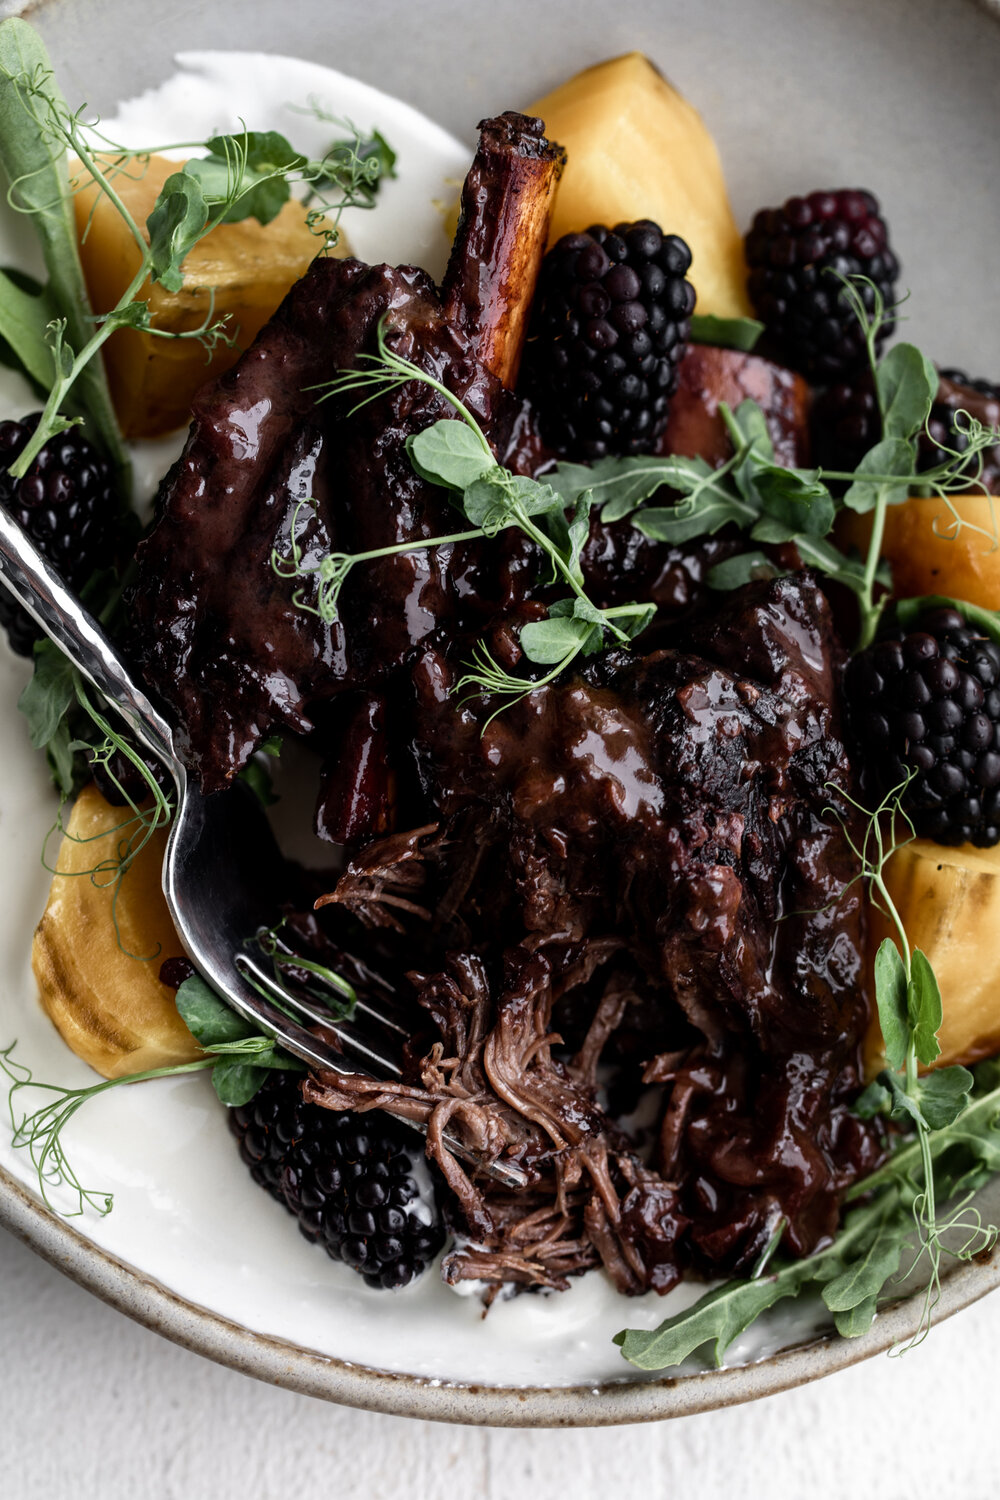 Blackberry Short Ribs with Whipped Ricotta and Roasted Beets-27.jpg